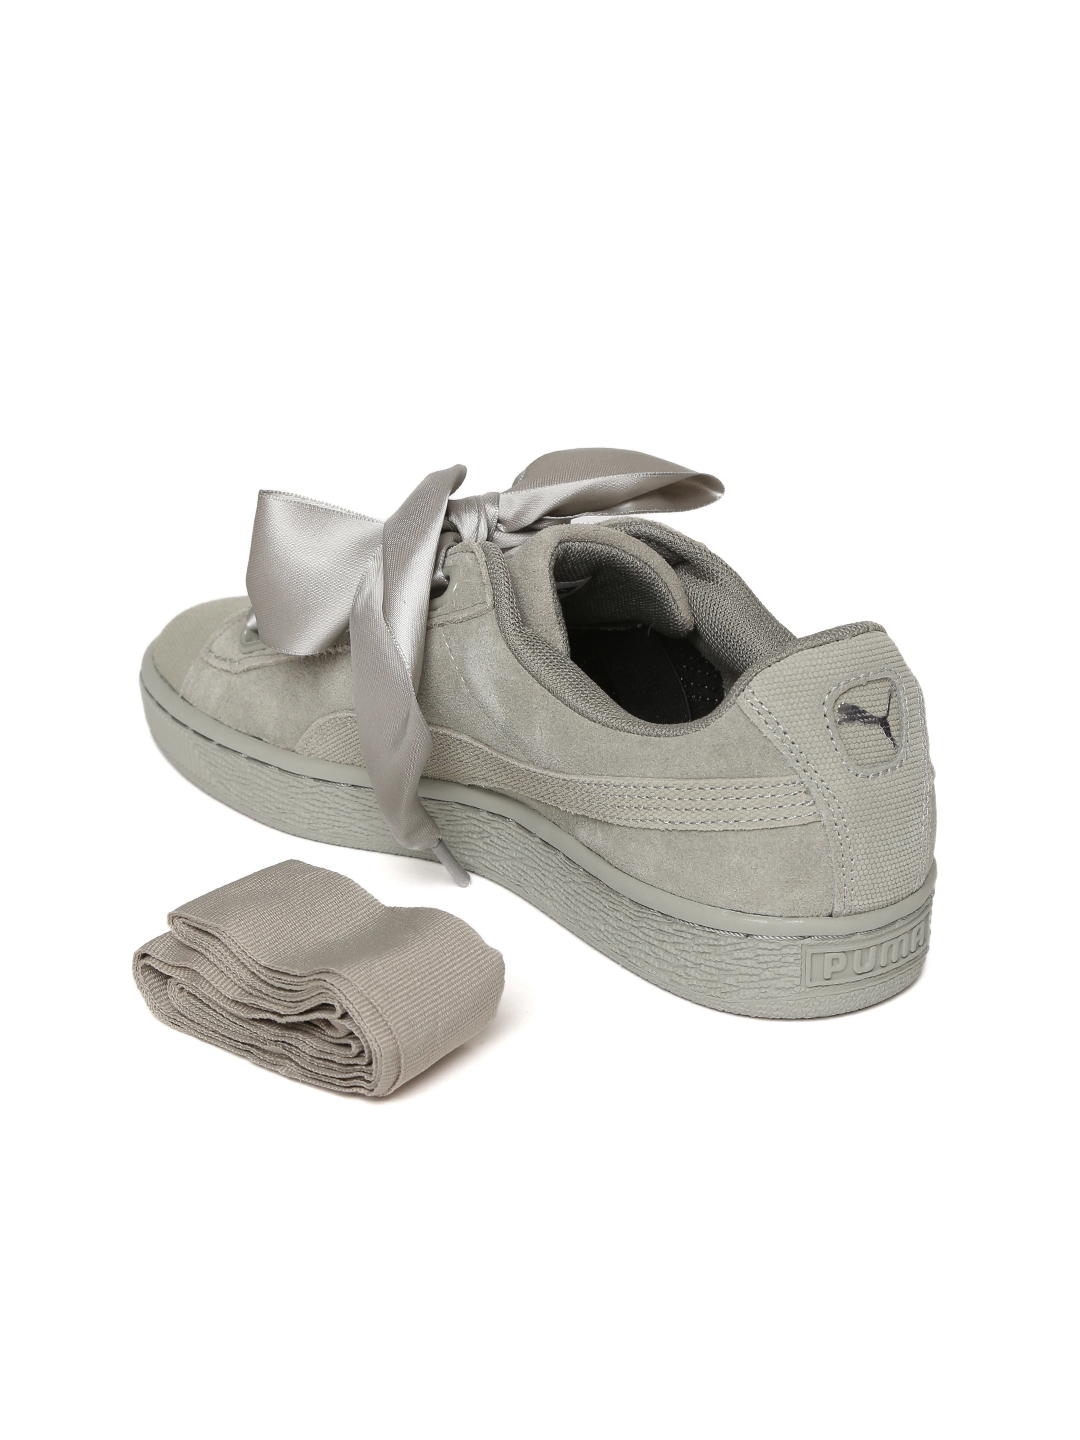 dca0f75fe1ed Buy Puma Women Grey Suede Heart Pebble Sneakers - Casual Shoes for ...